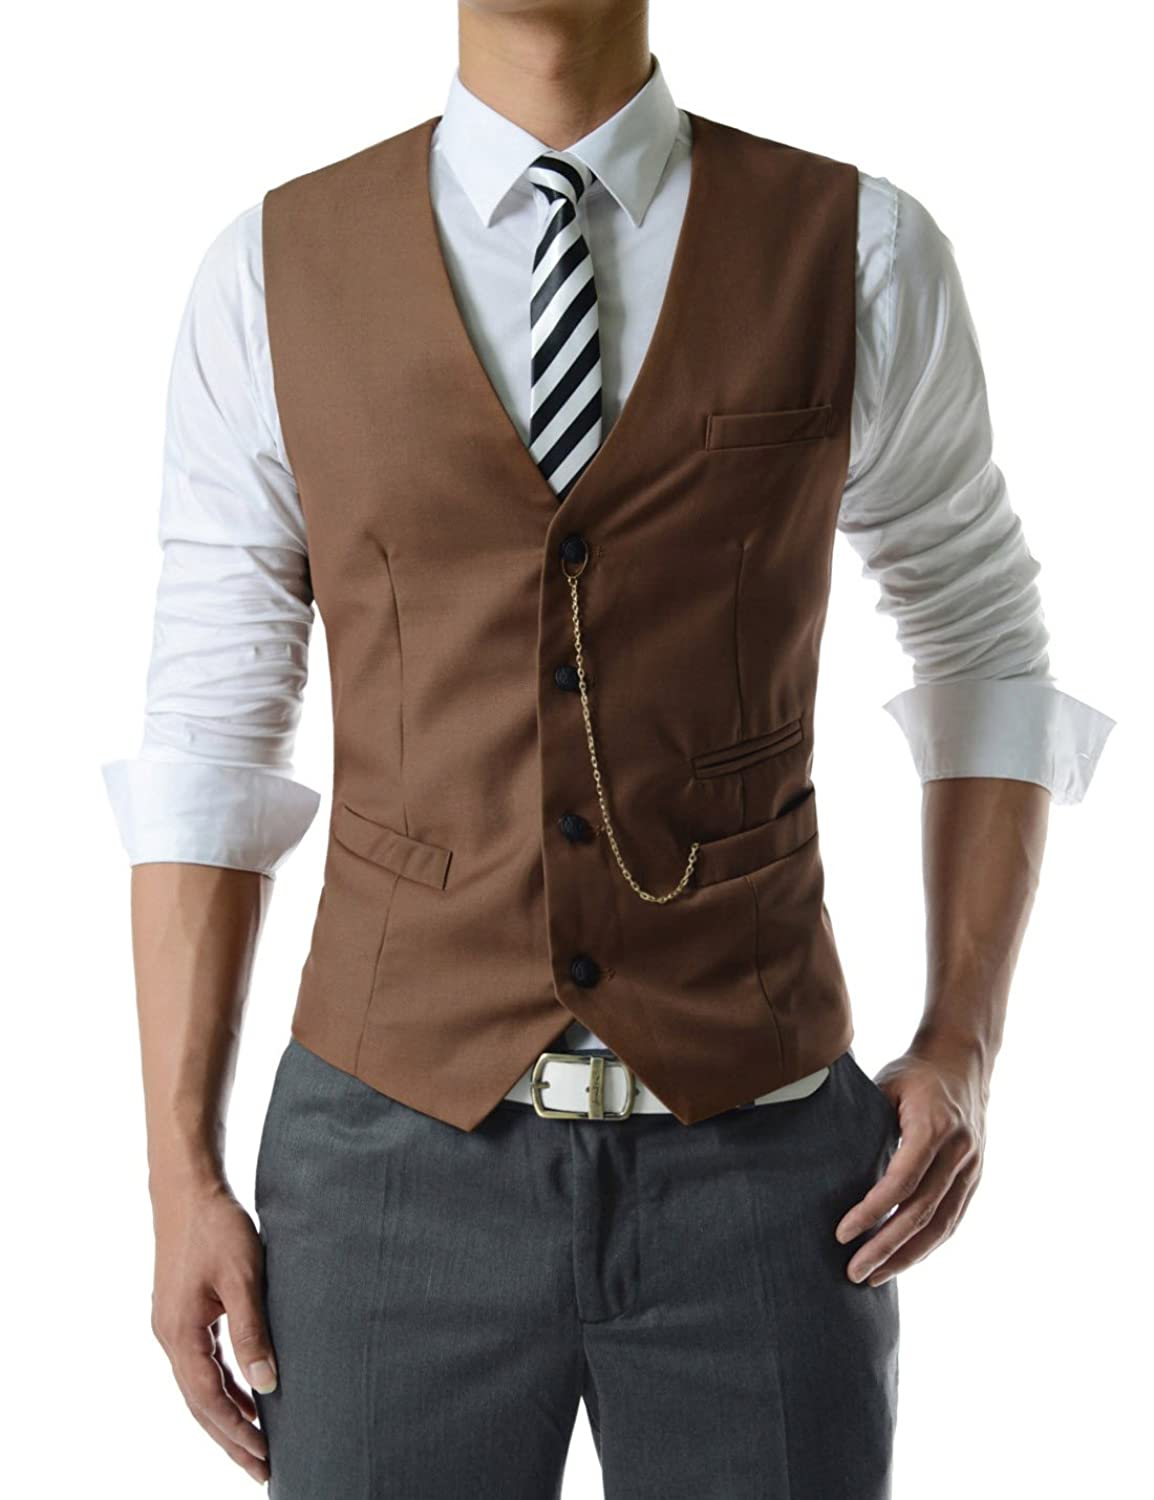 Men's Steampunk Vests, Waistcoats, Corsets SVE TheLees Mens slim fit chain point 3 button vest $33.99 AT vintagedancer.com